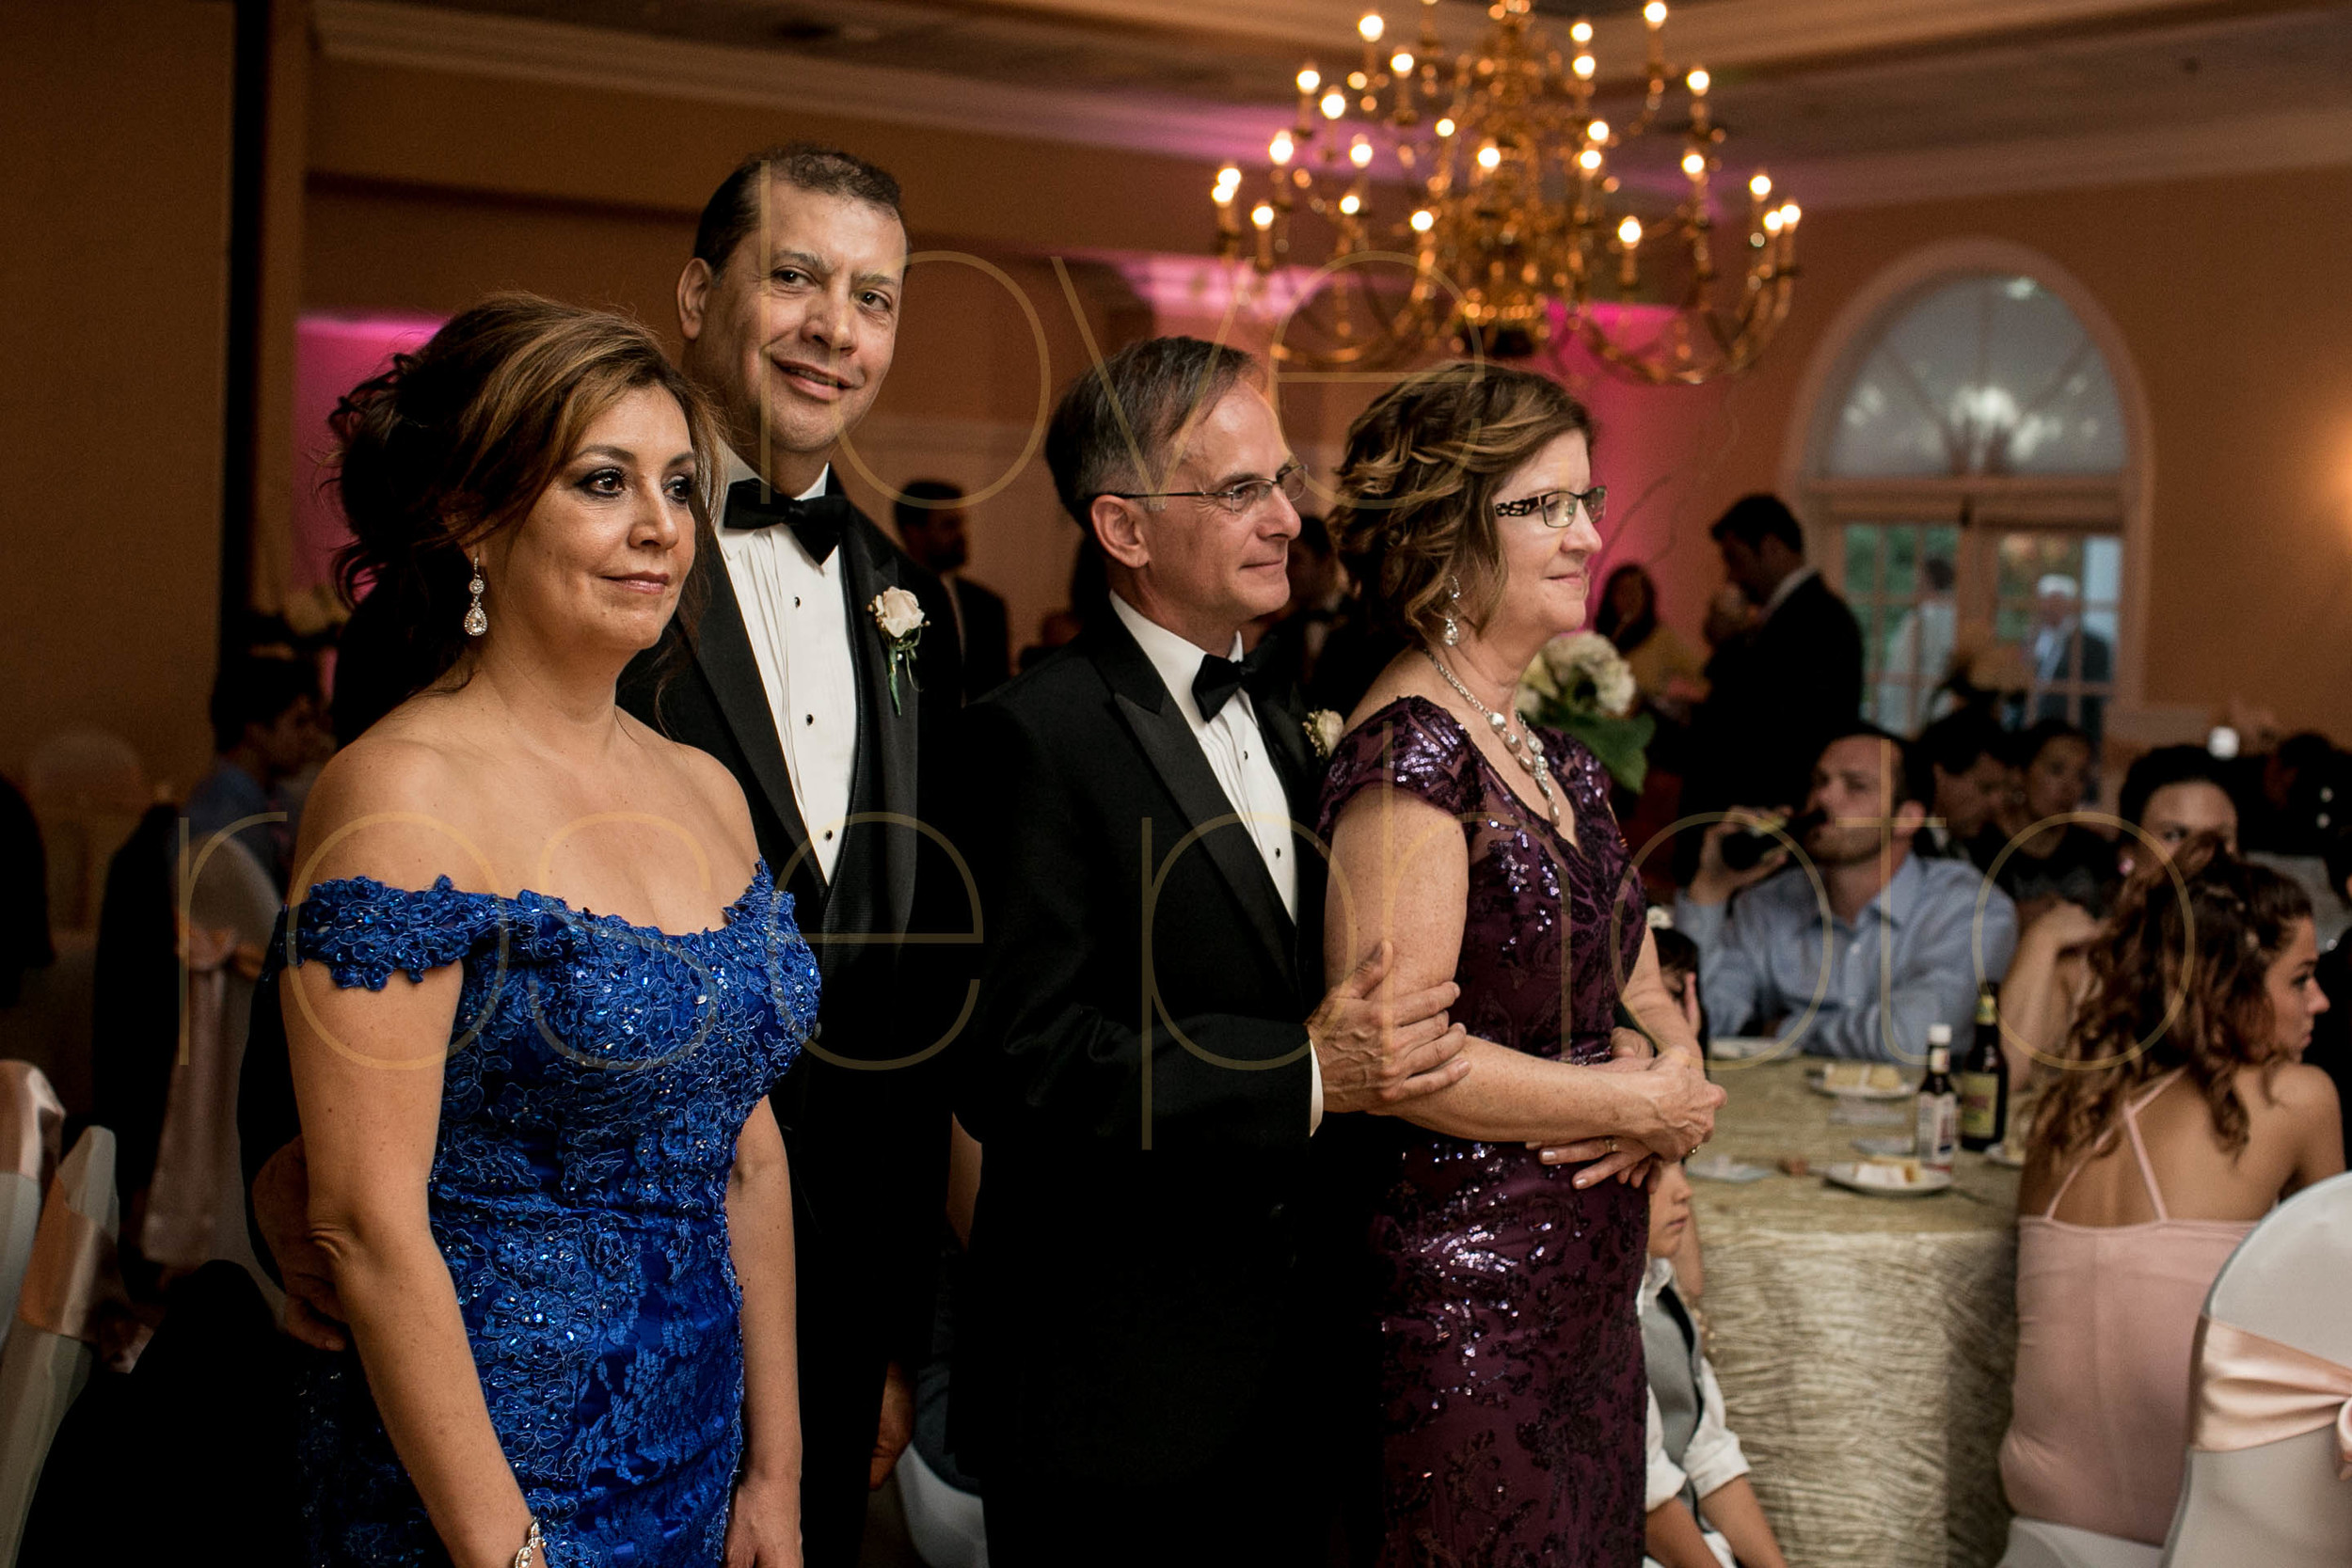 Claudia + Grant Heidel House Wiscon lake wedding best of chicago wedding photographers -40.jpg